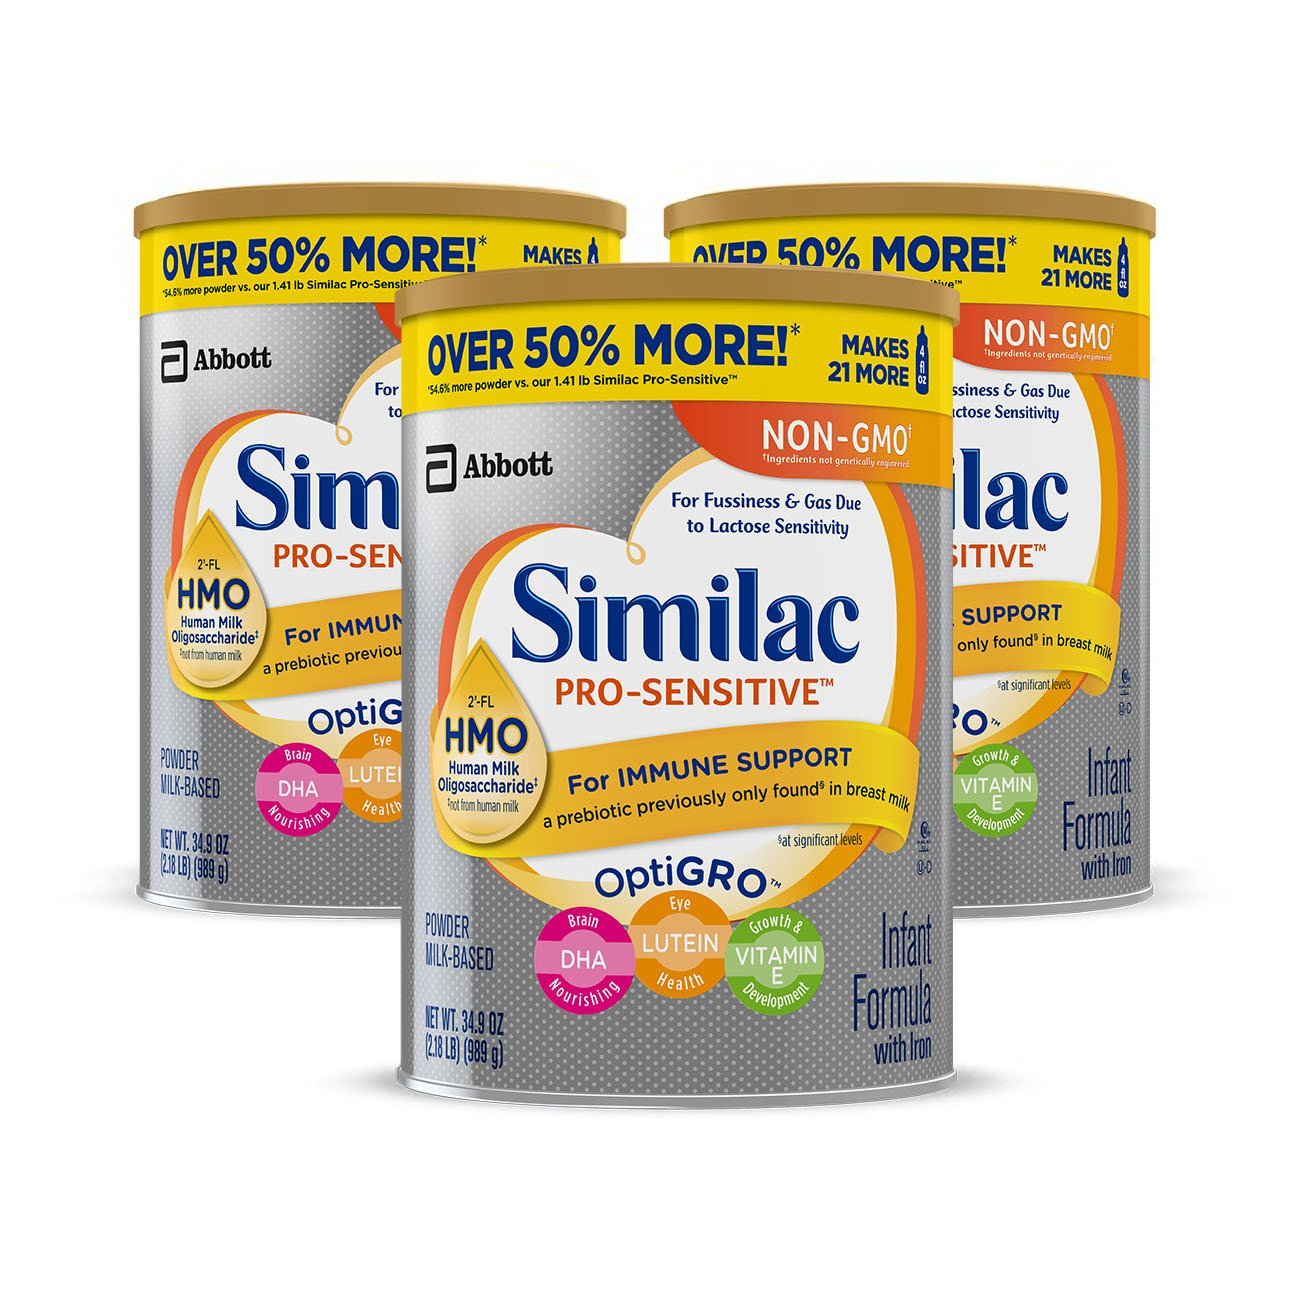 Similac Pro-Sensitive Non-GMO Infant Formula with Iron, with 2'-FL HMO, For Immune Support, Baby Formula, Powder, 34.9 oz, 3 Count (One Month Supply) by Similac